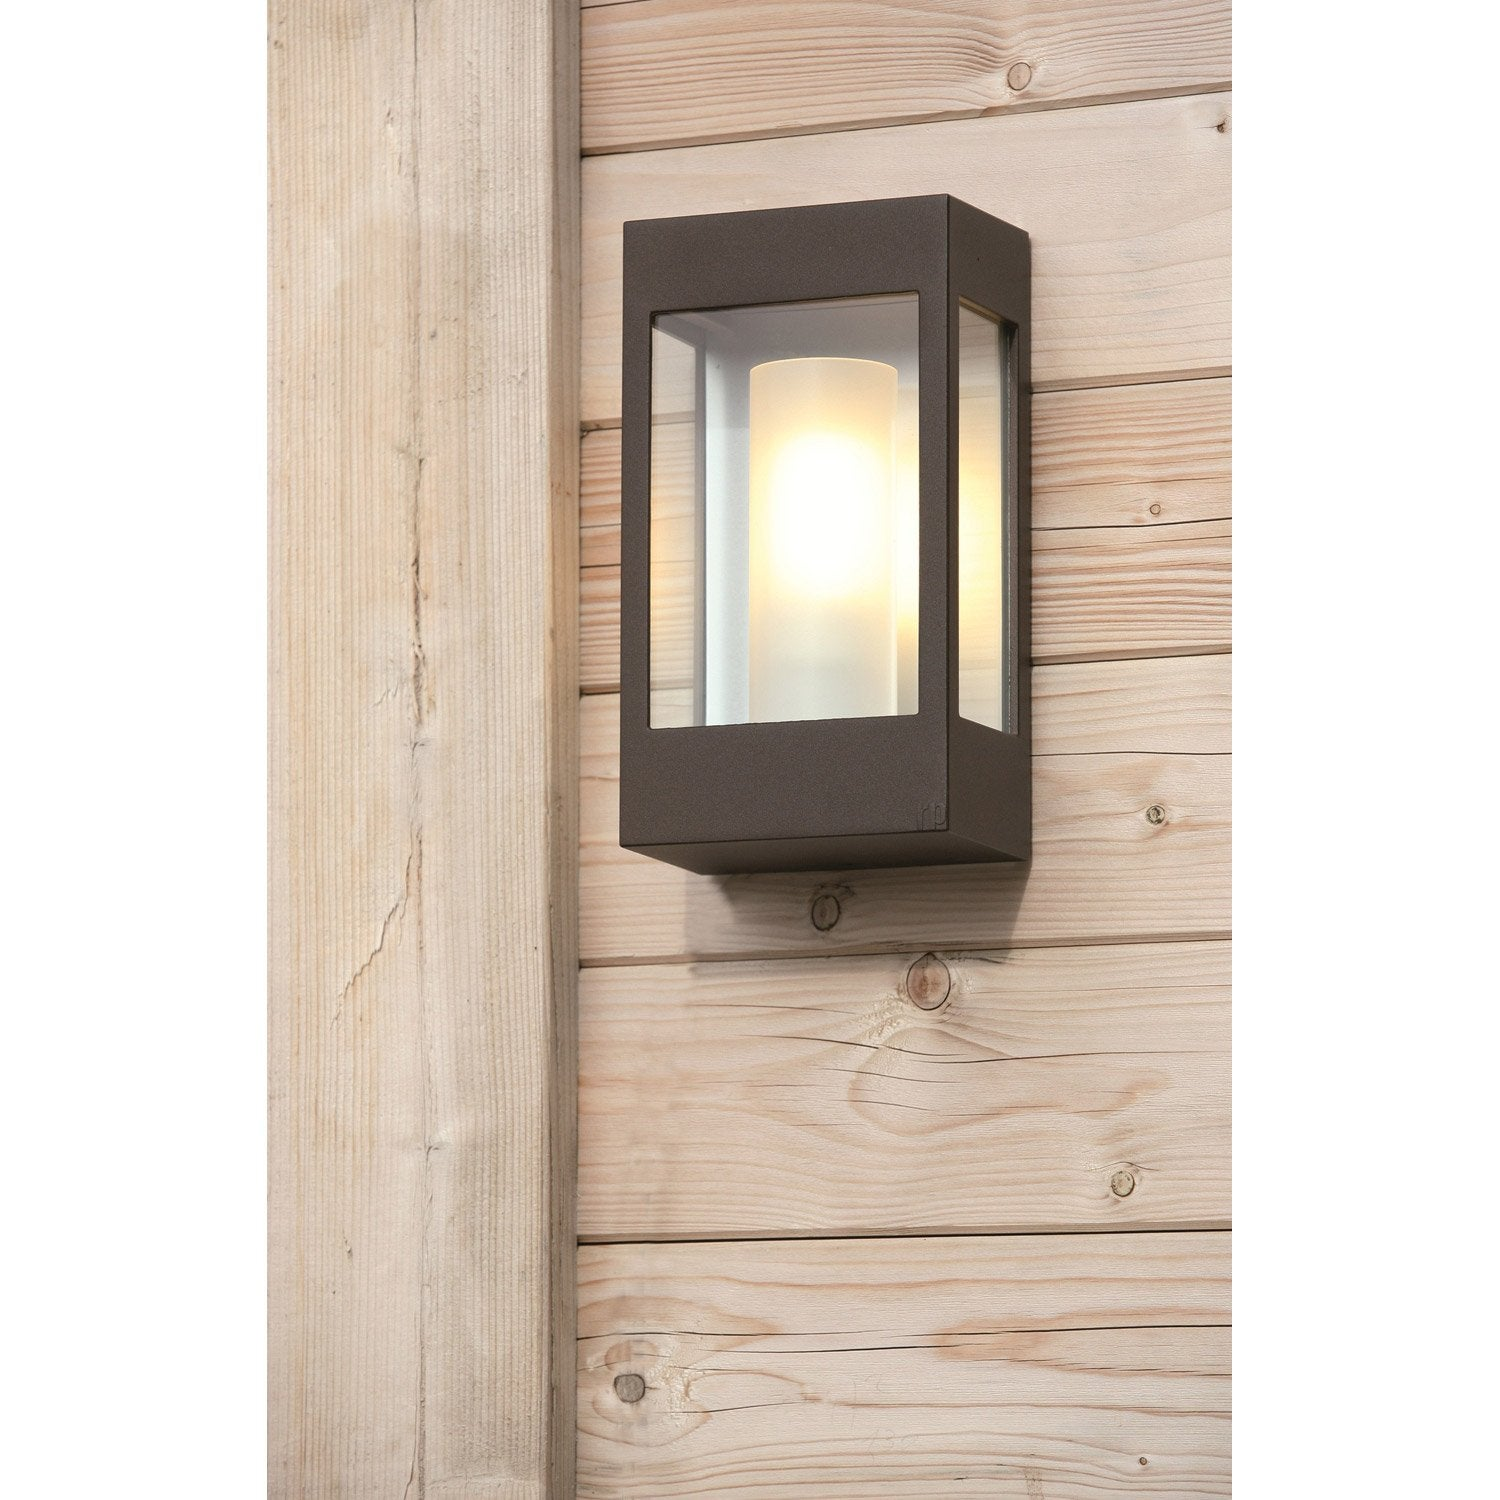 Applique ext rieure brick e27 60 w rouille roger pradier for Applique murale exterieur led leroy merlin